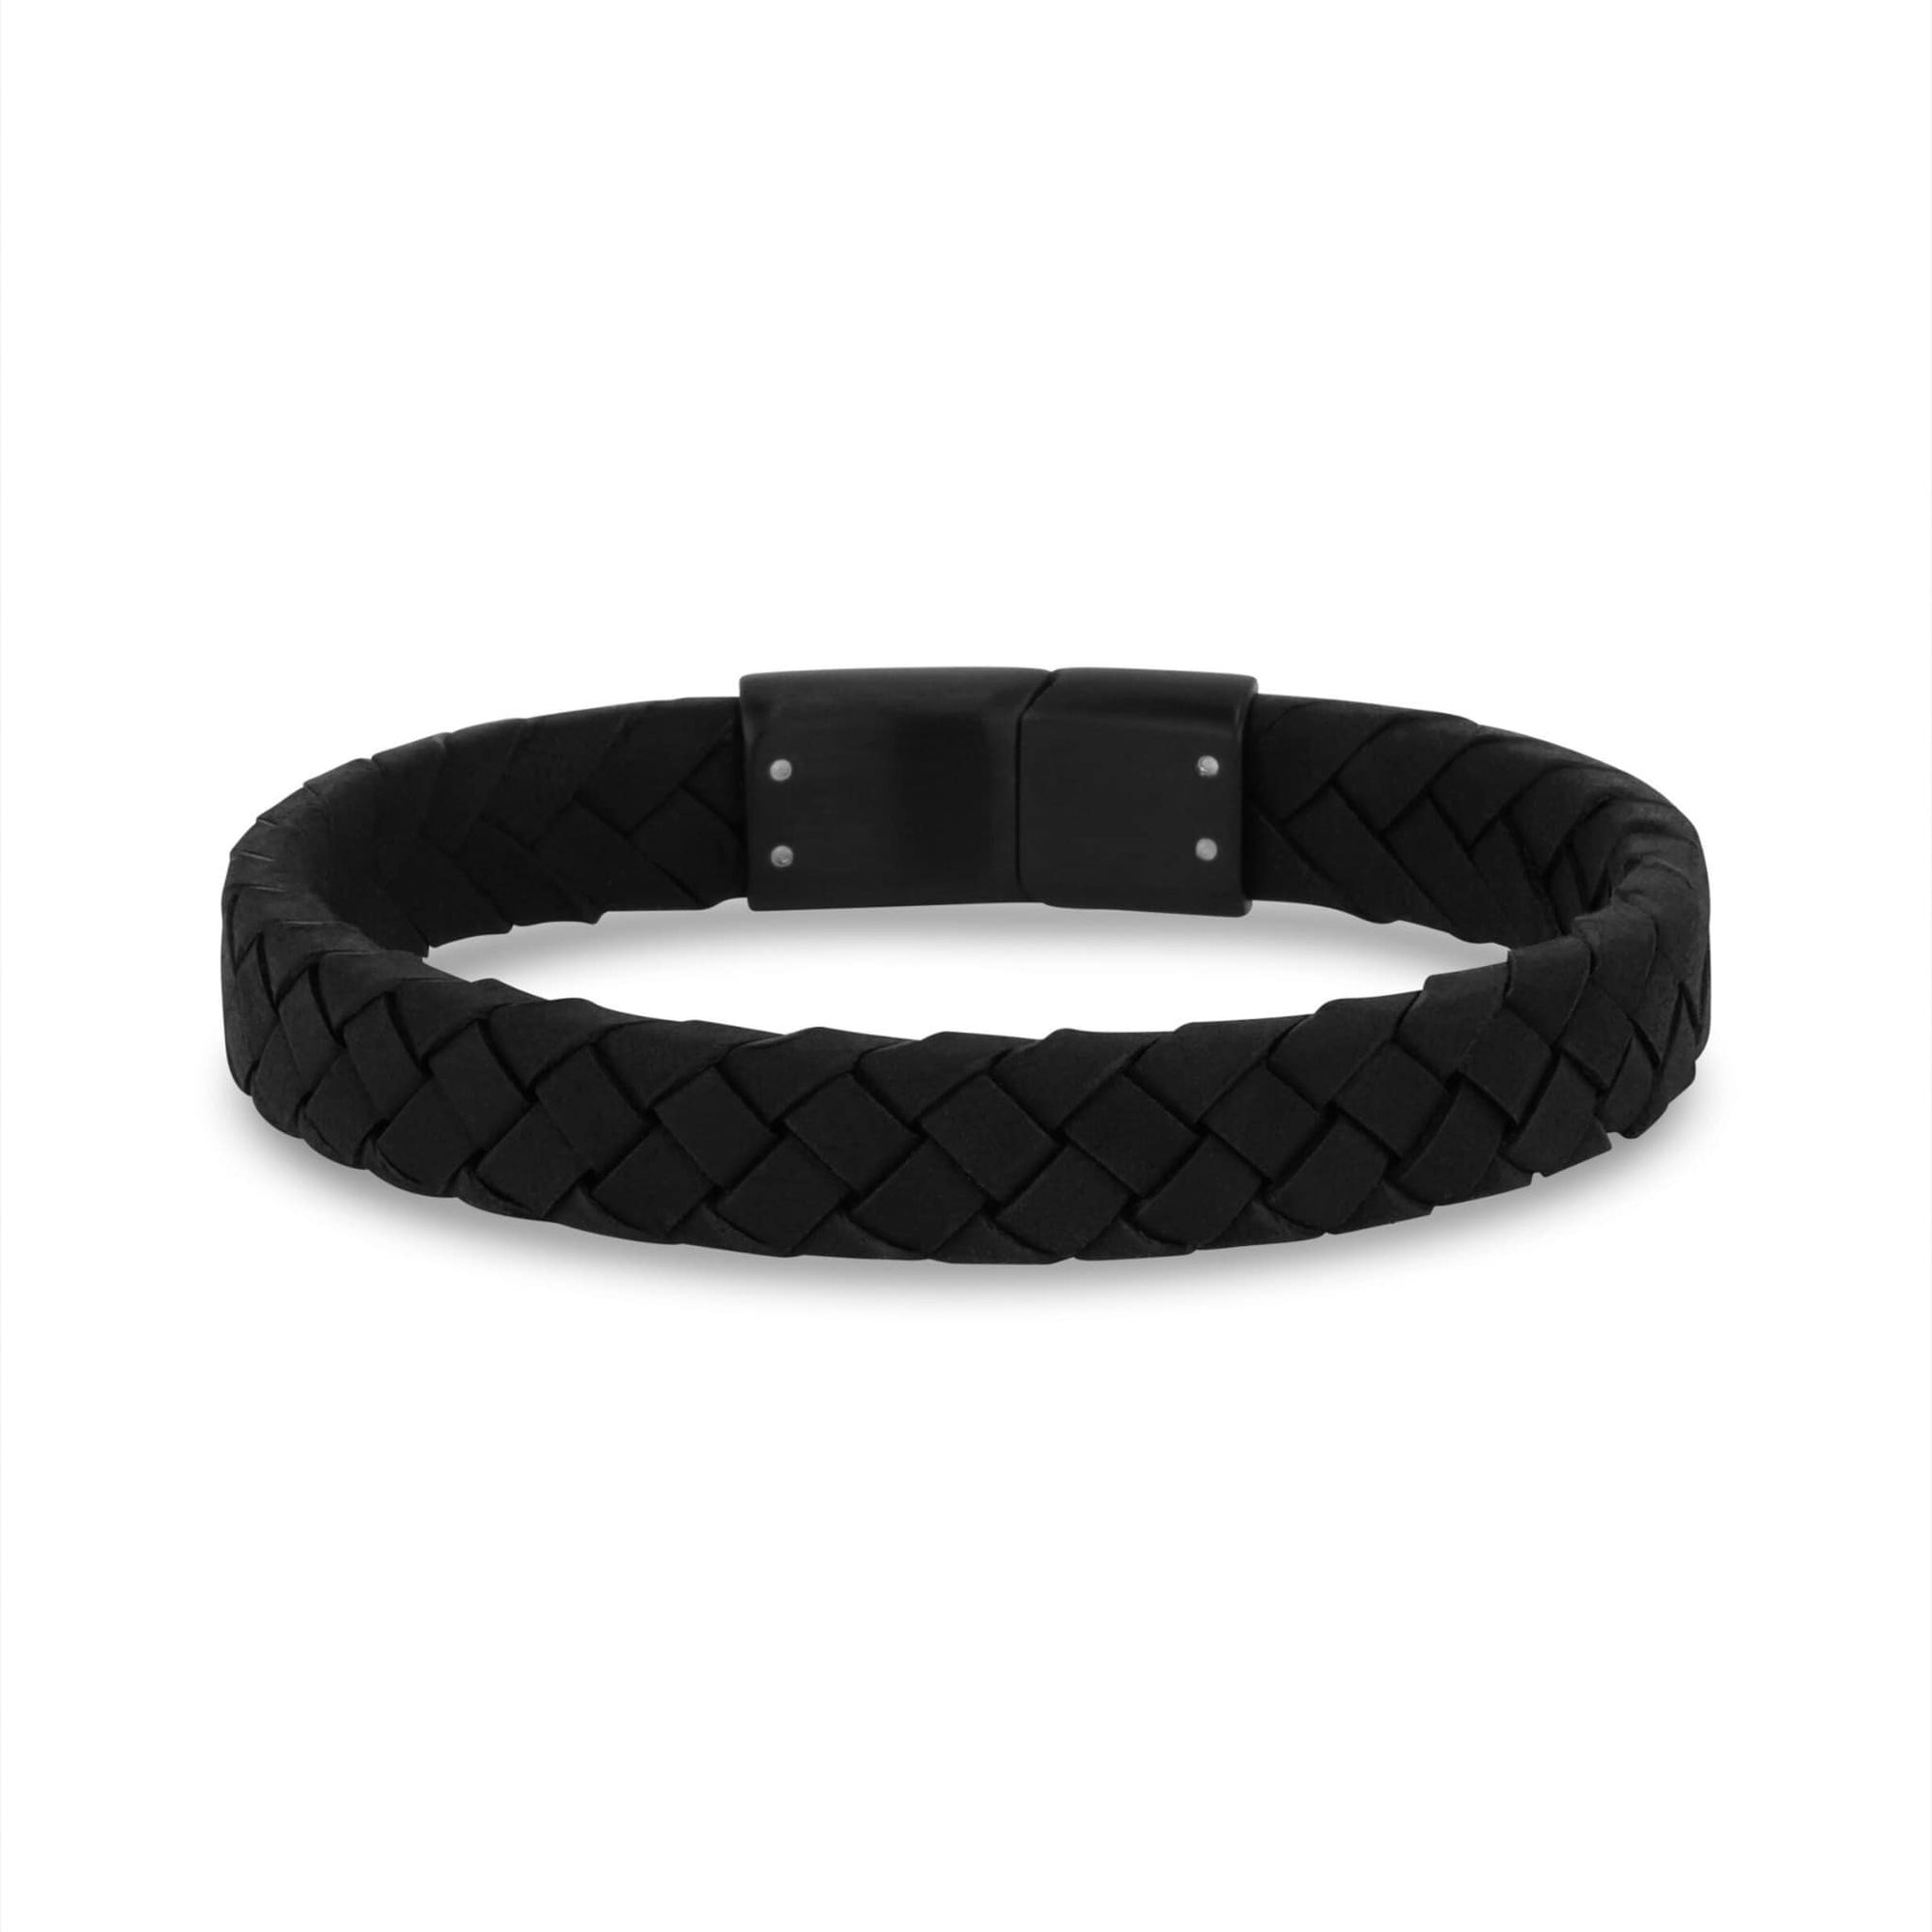 10mm Flat Black Italian Leather Bracelet at Arman's Jewellers